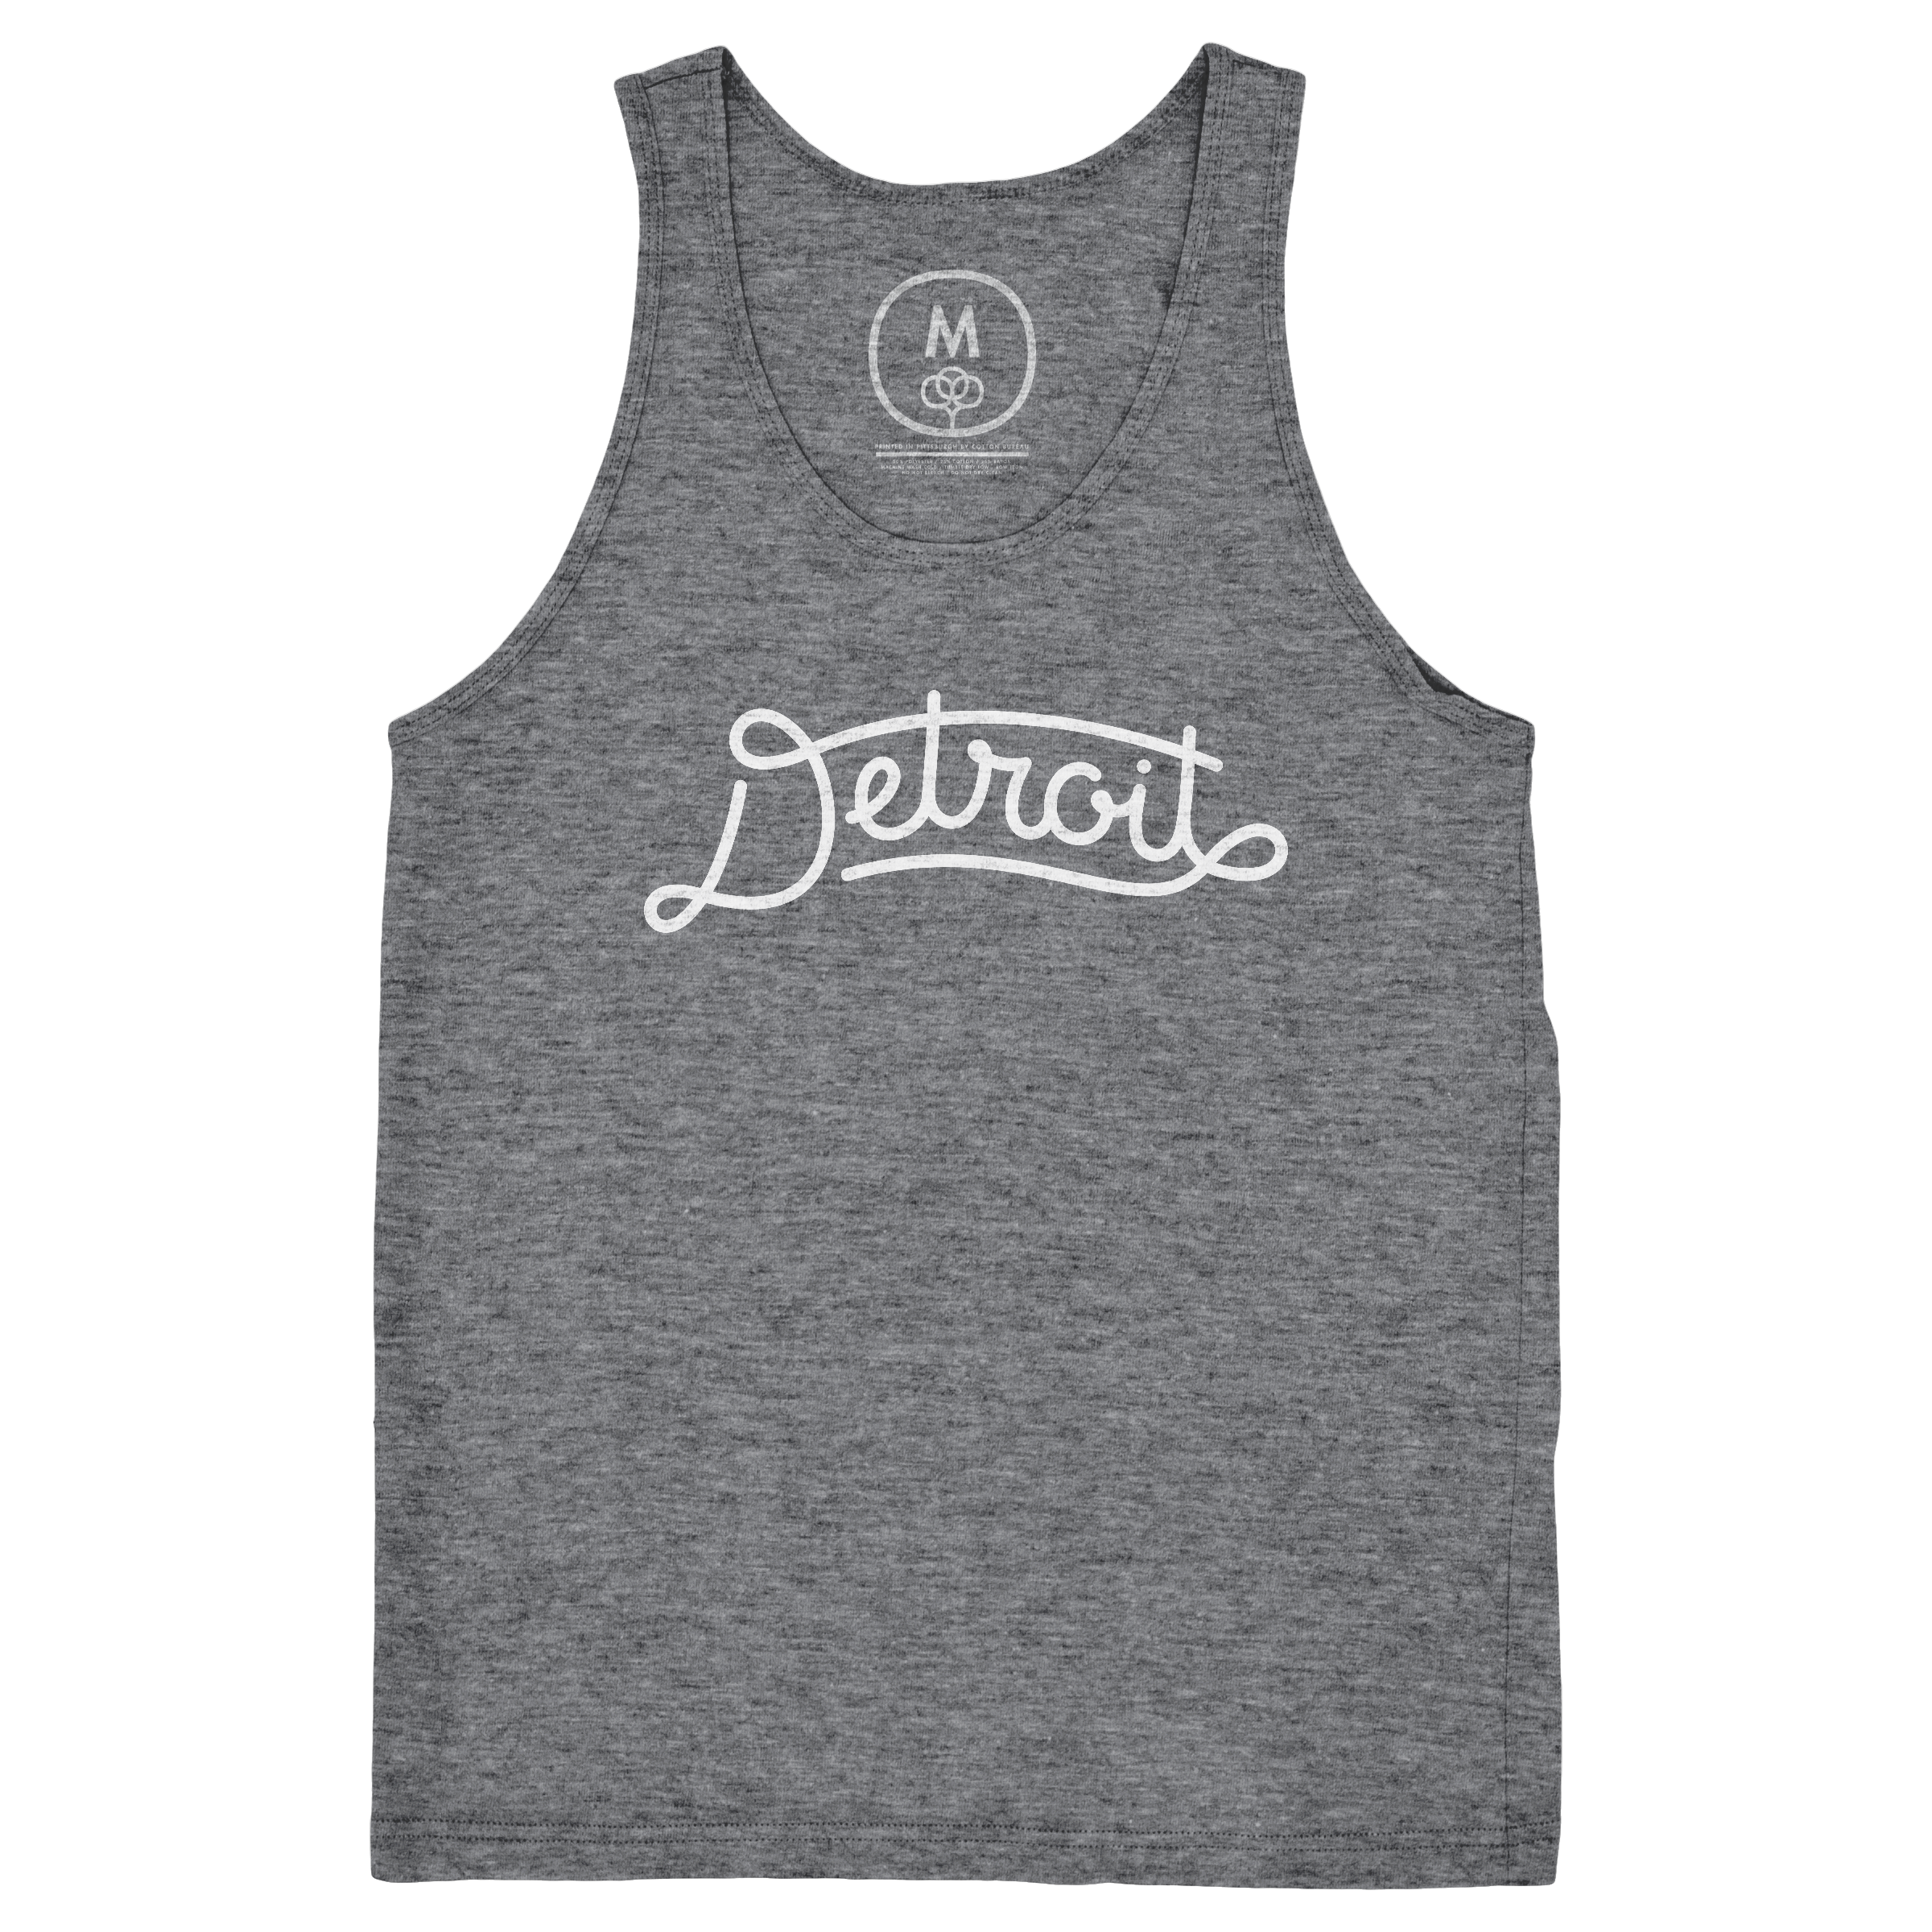 My City Tank Top